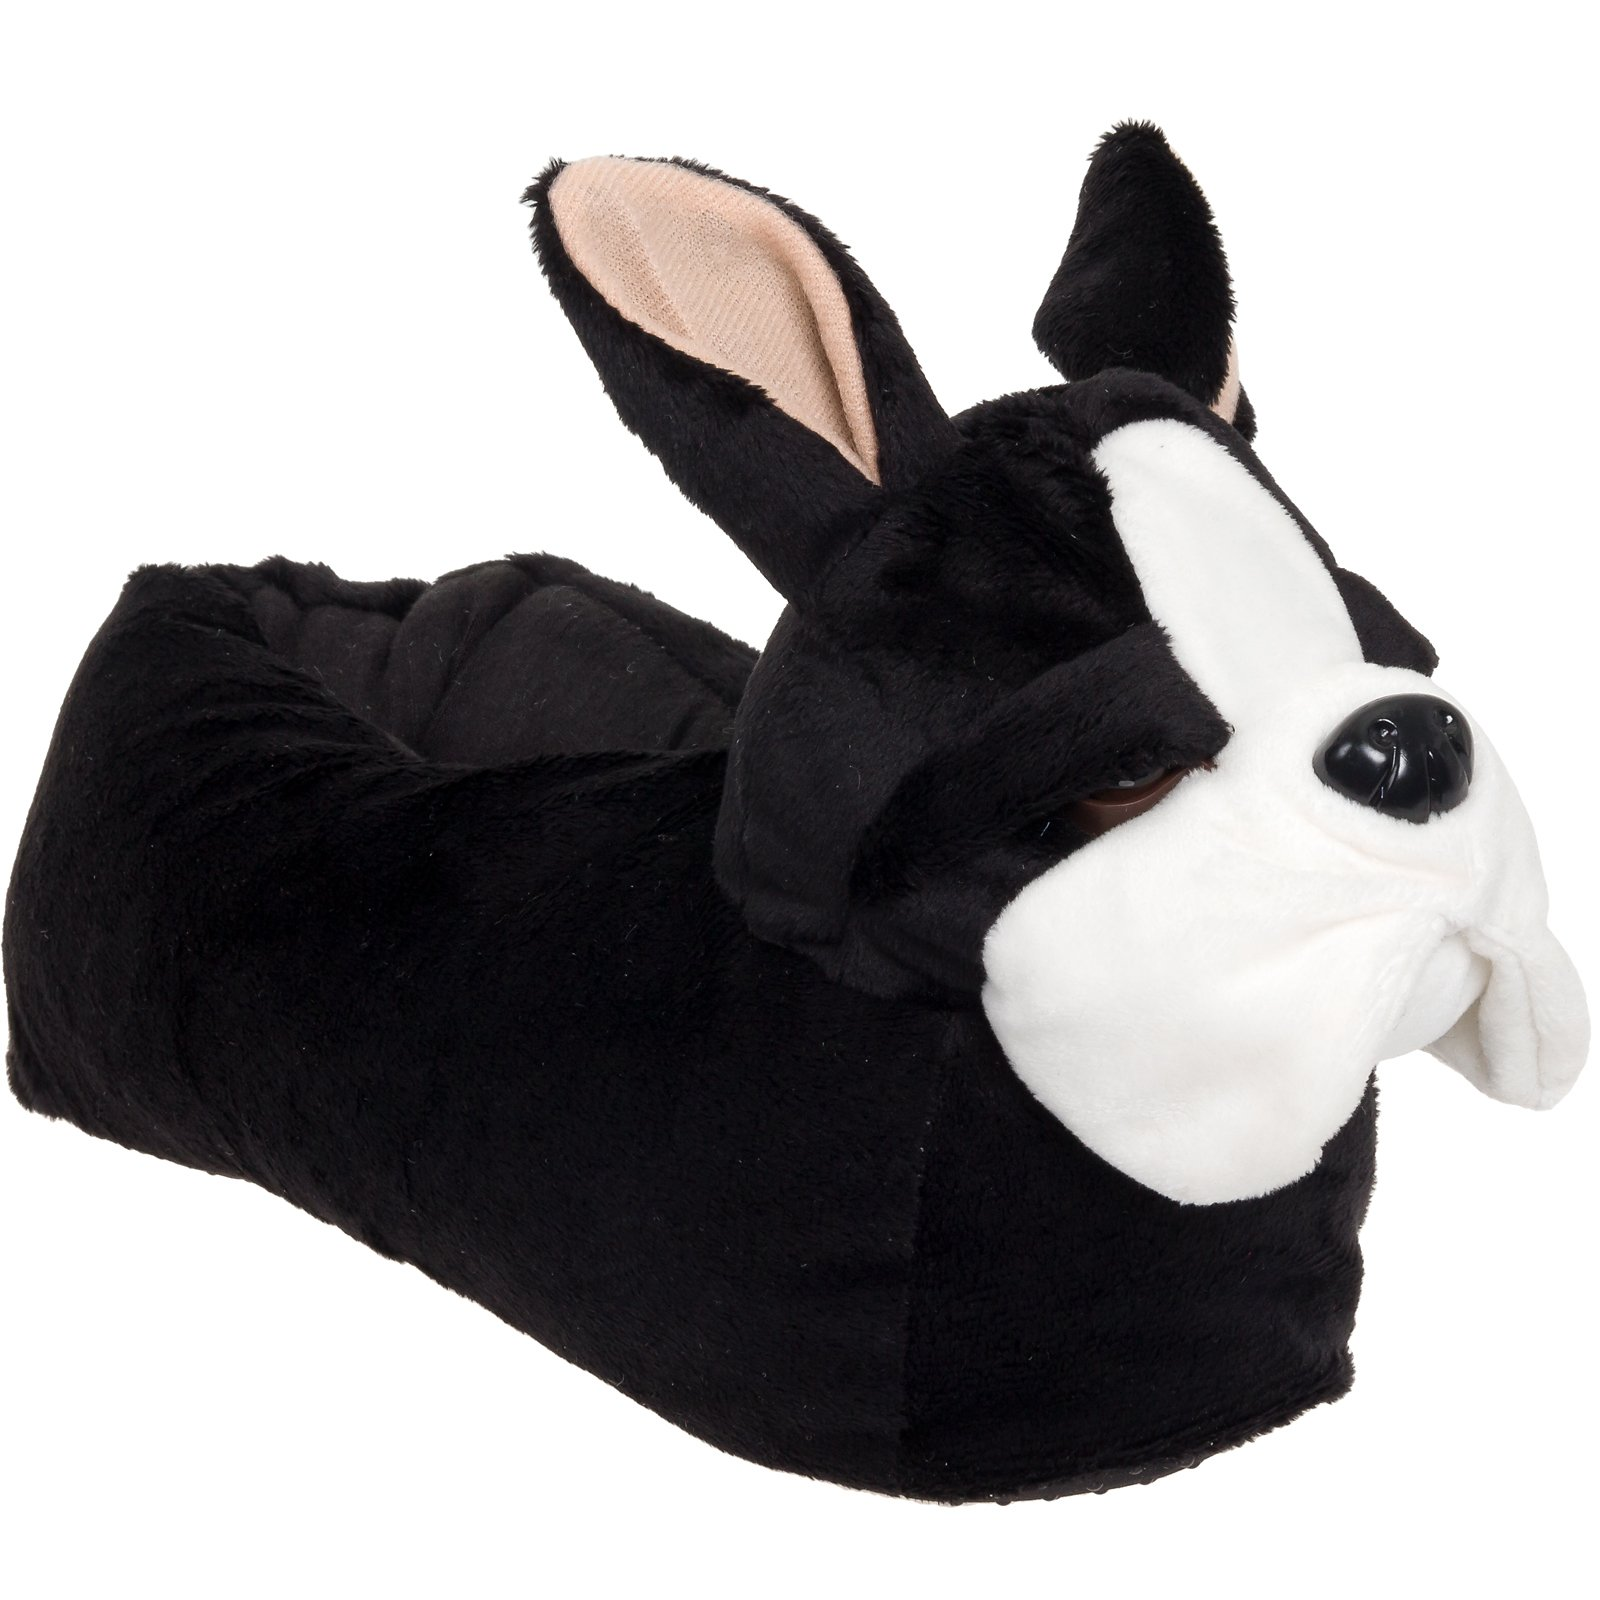 Silver Lilly Animal Slippers - Plush French Bulldog Dog Slippers by (Small) by Silver Lilly (Image #1)